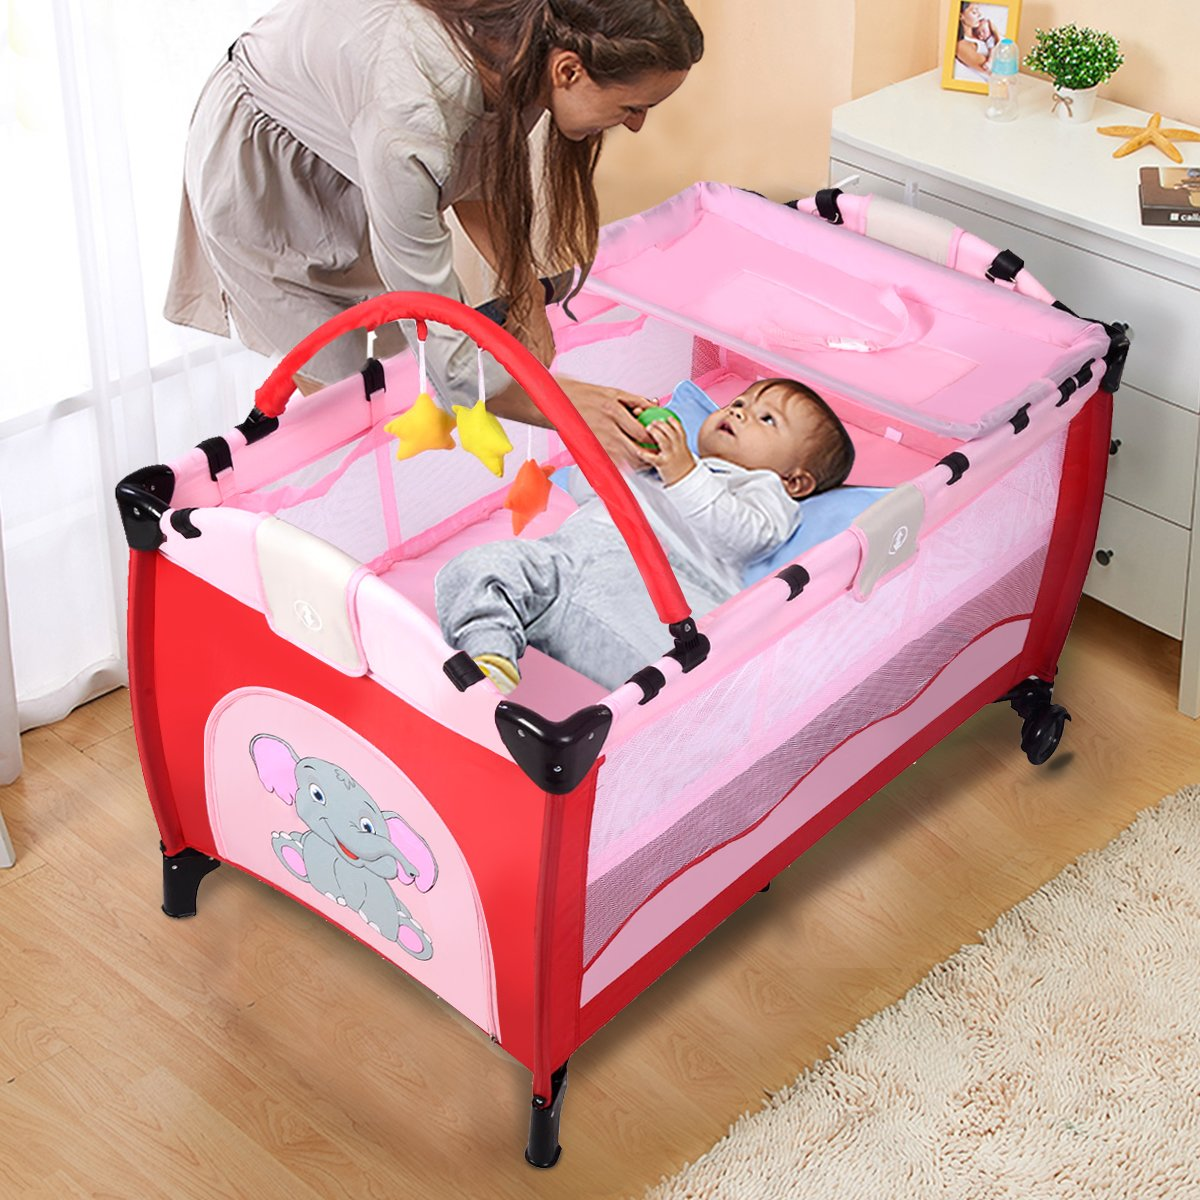 Costway Portable Infant Baby Travel Cot Bed Play Pen Child Bassinet Playpen Entryway W Mat 2 in 1 Coffee